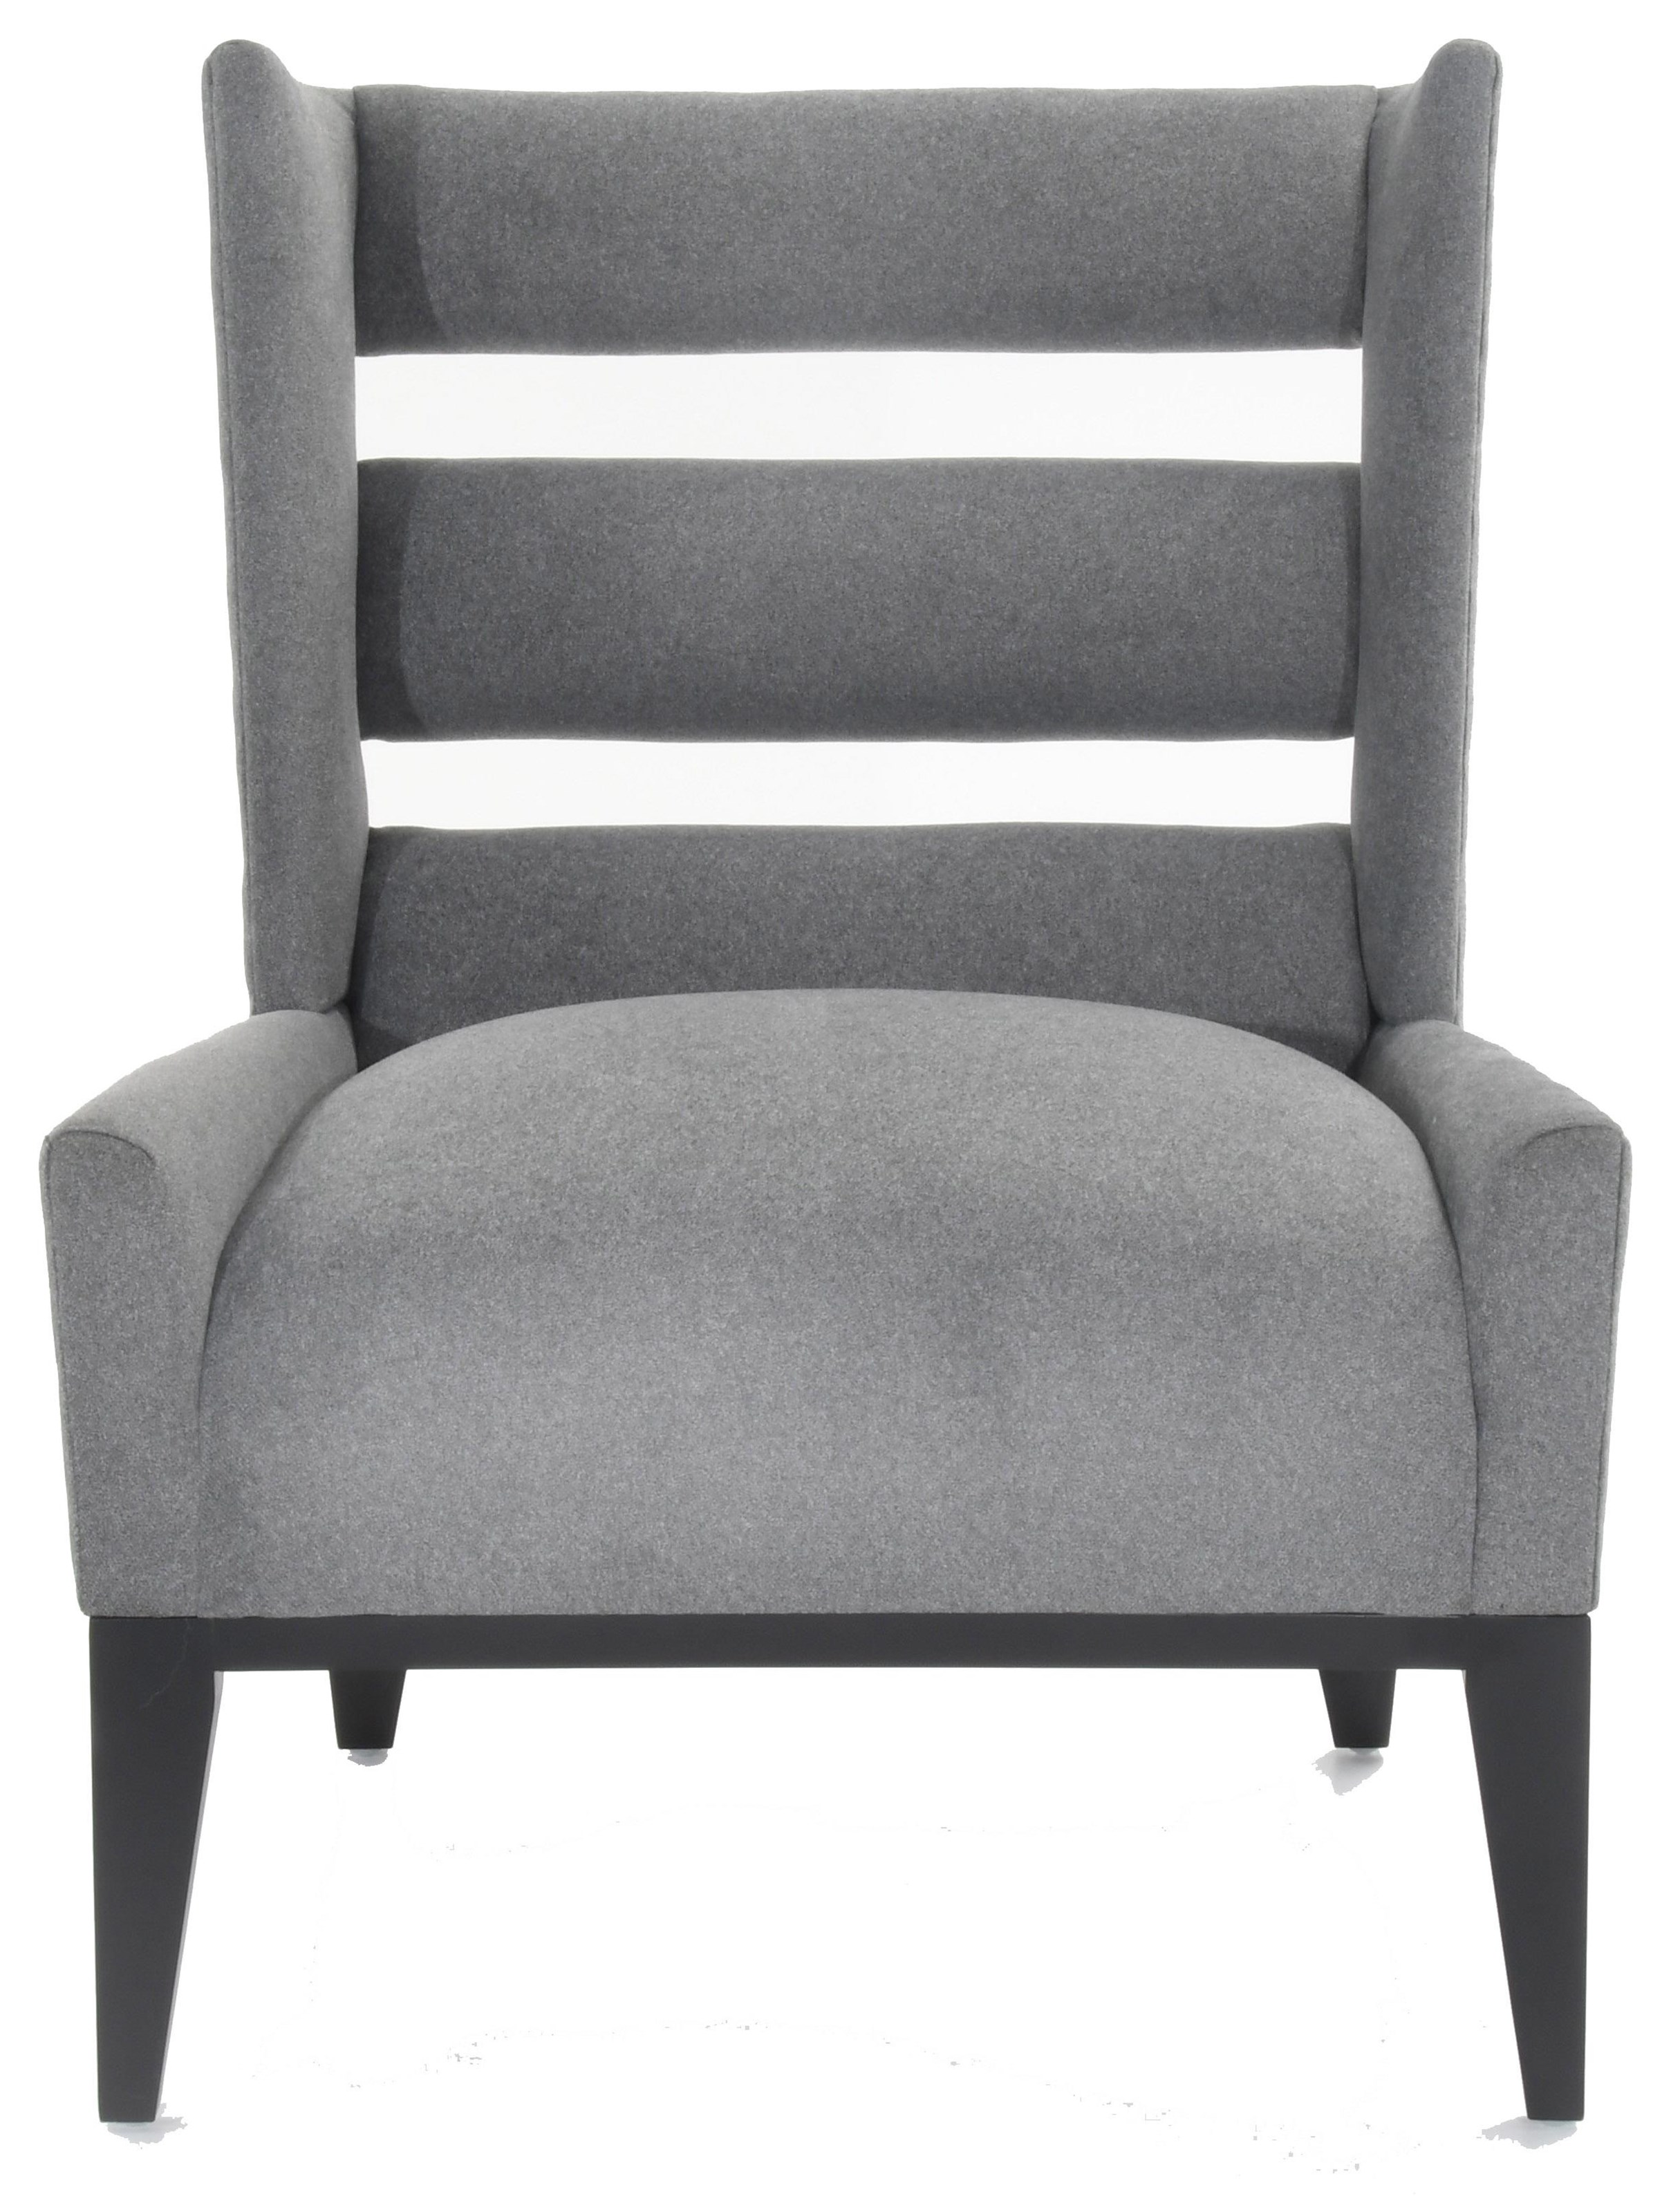 Interiors - Orleans Chair by Bernhardt at Baer's Furniture